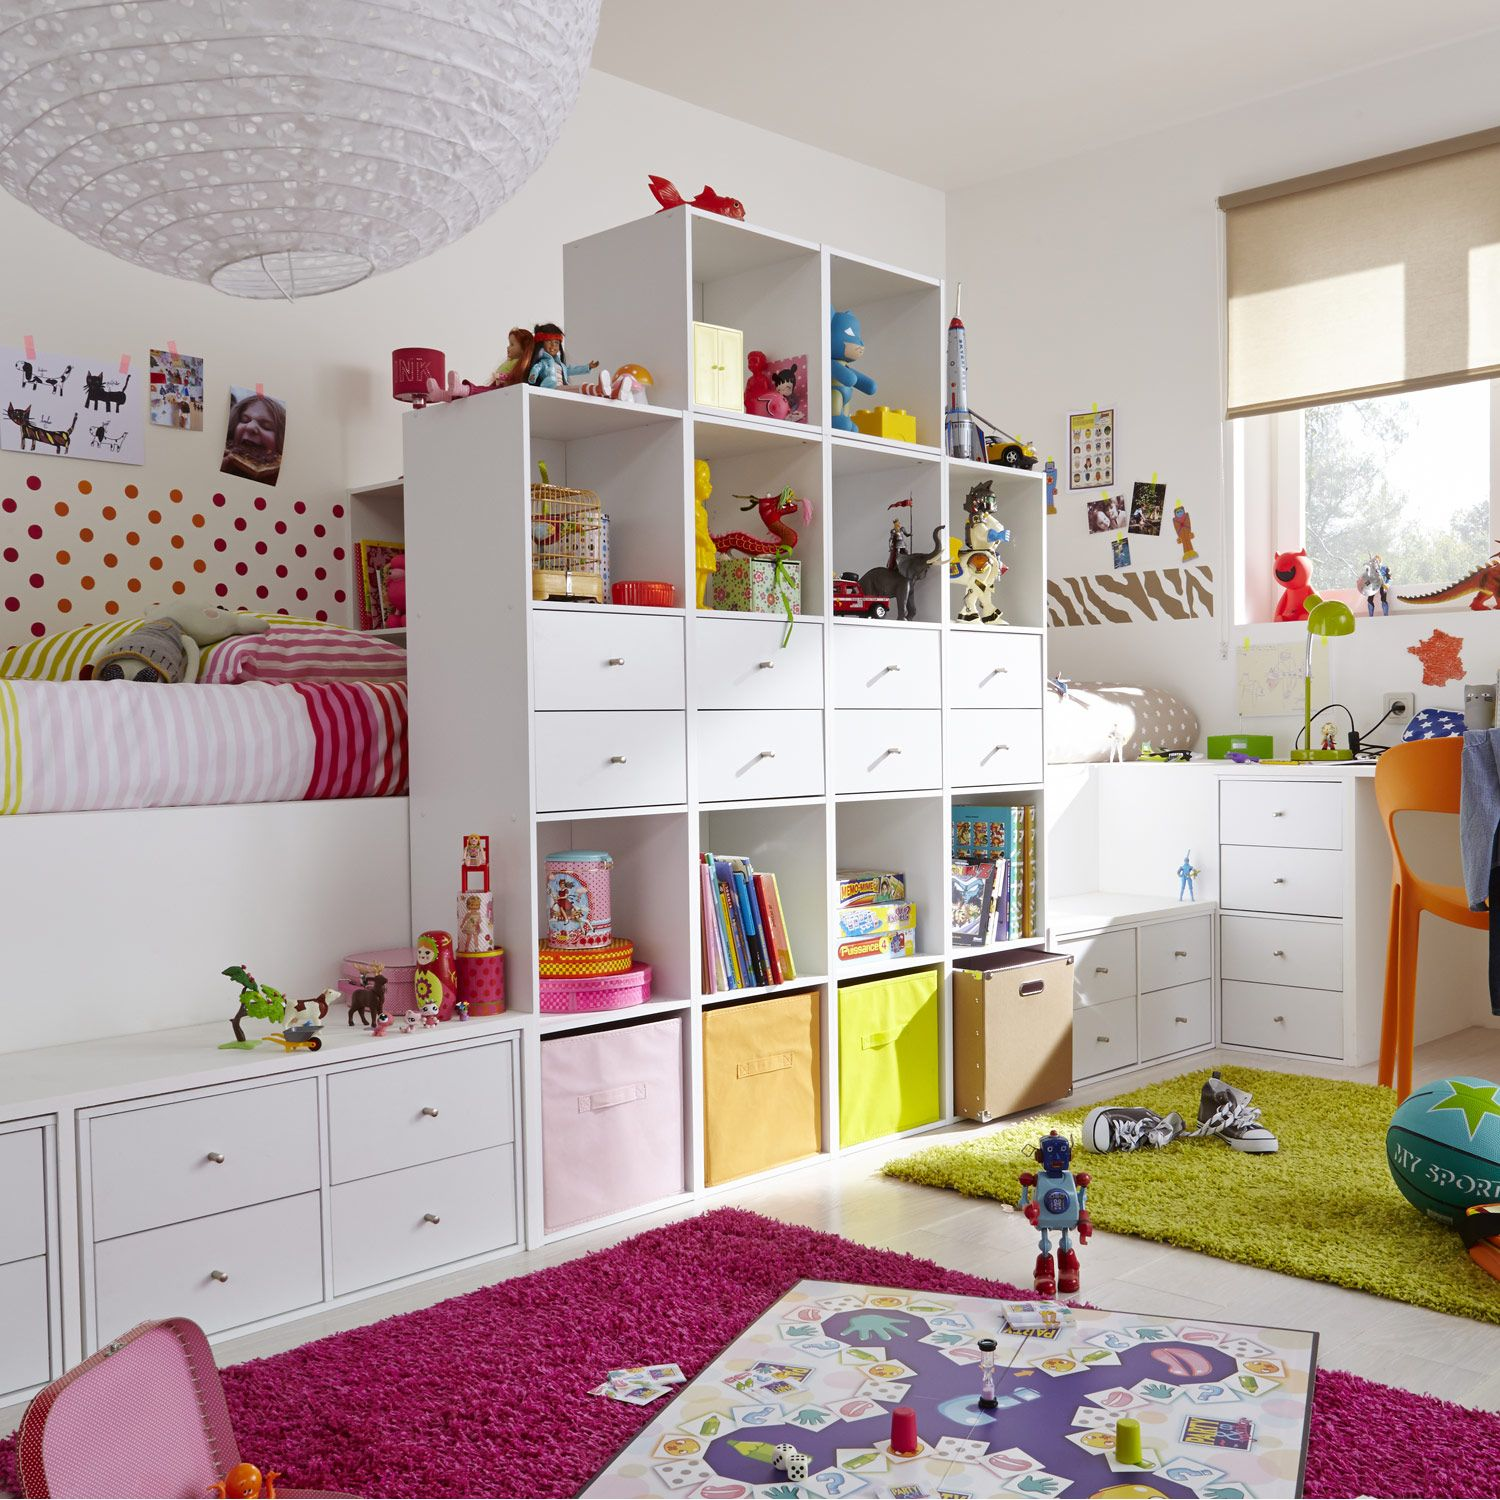 Am nagement d coratif multikaz 32 chambre d 39 enfant leroy for Decoration chambre d enfant